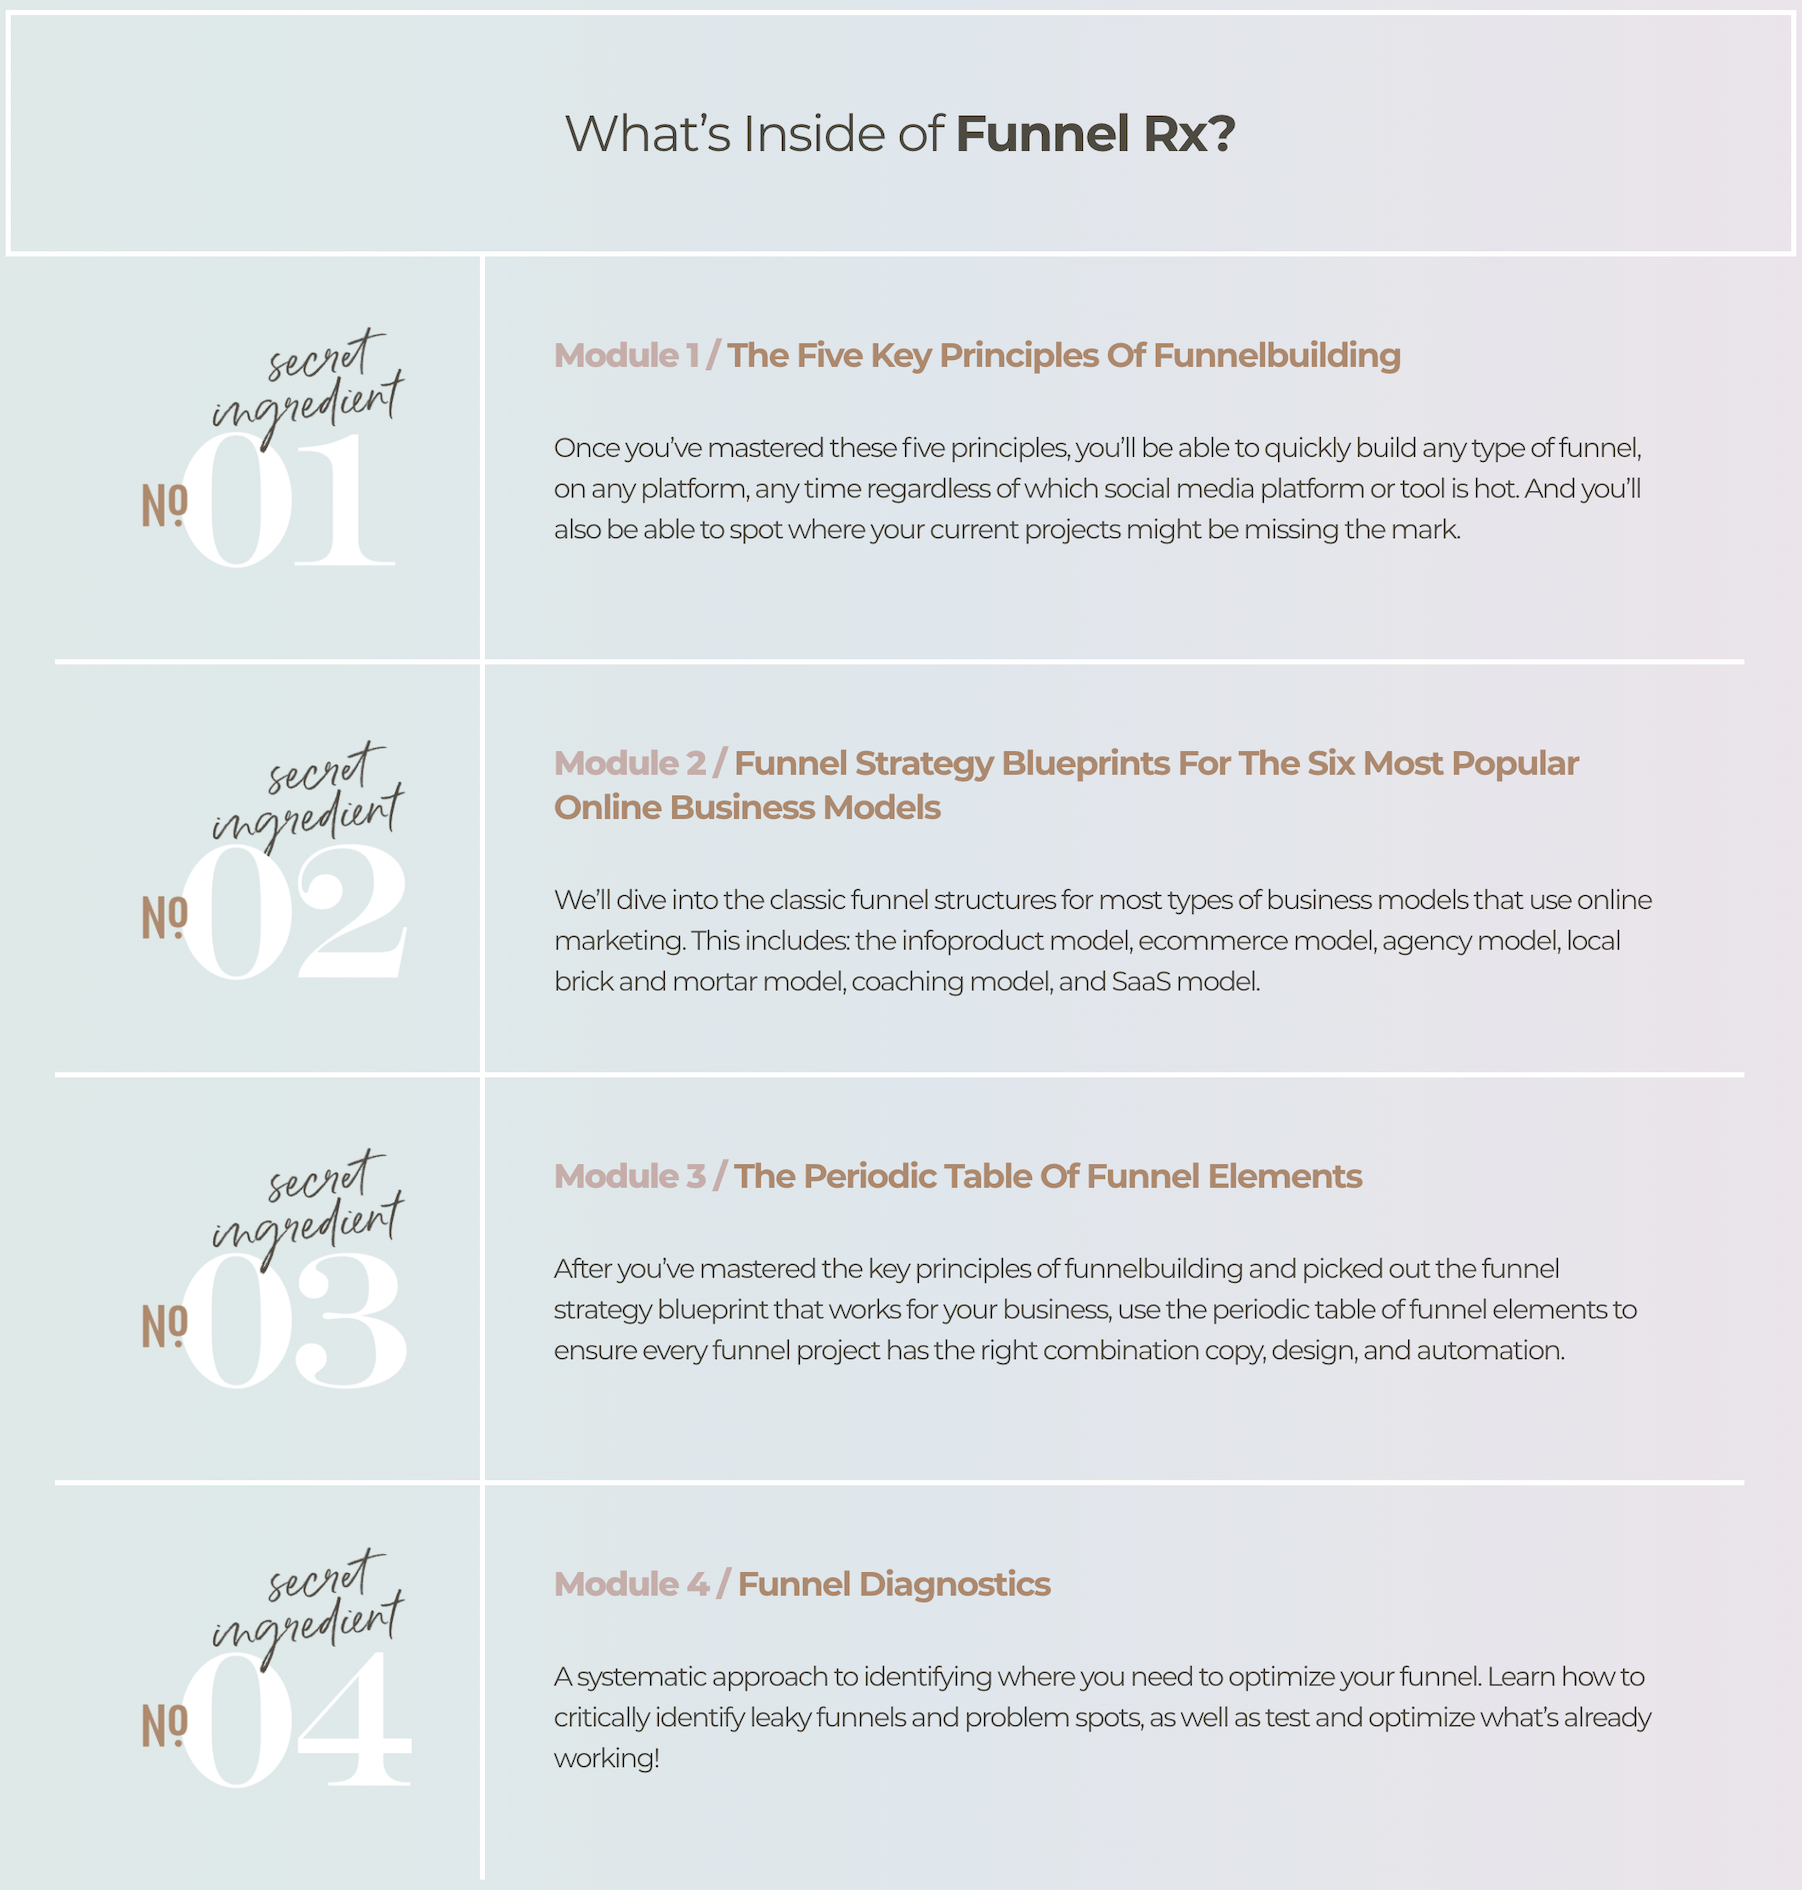 Modules of Funnel Rx